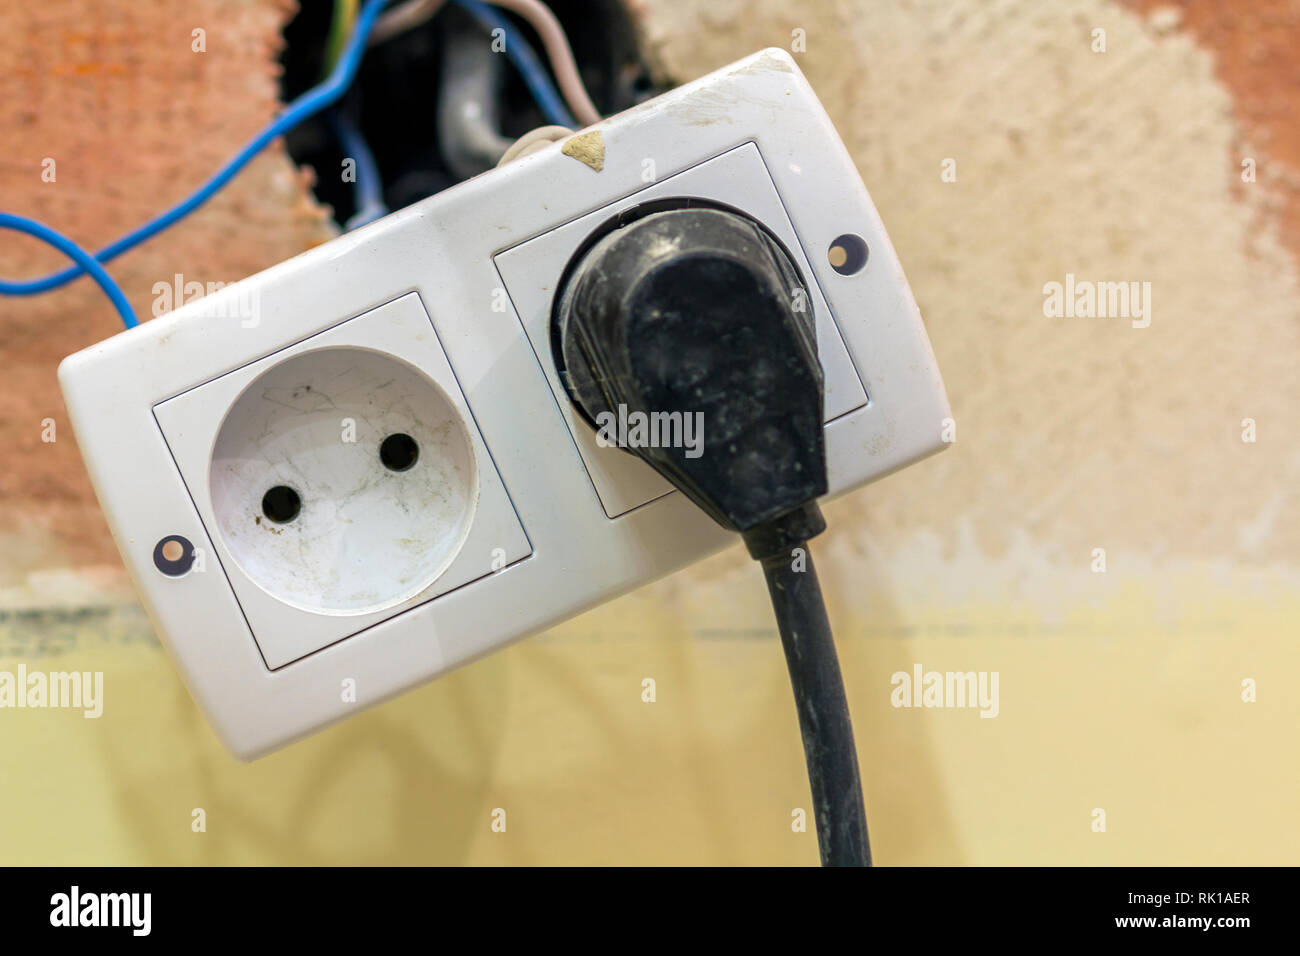 power outlet in double socket with connecting electric isolated colorful  wires, plastic plug installation on light yellow plastered wall  home  interio